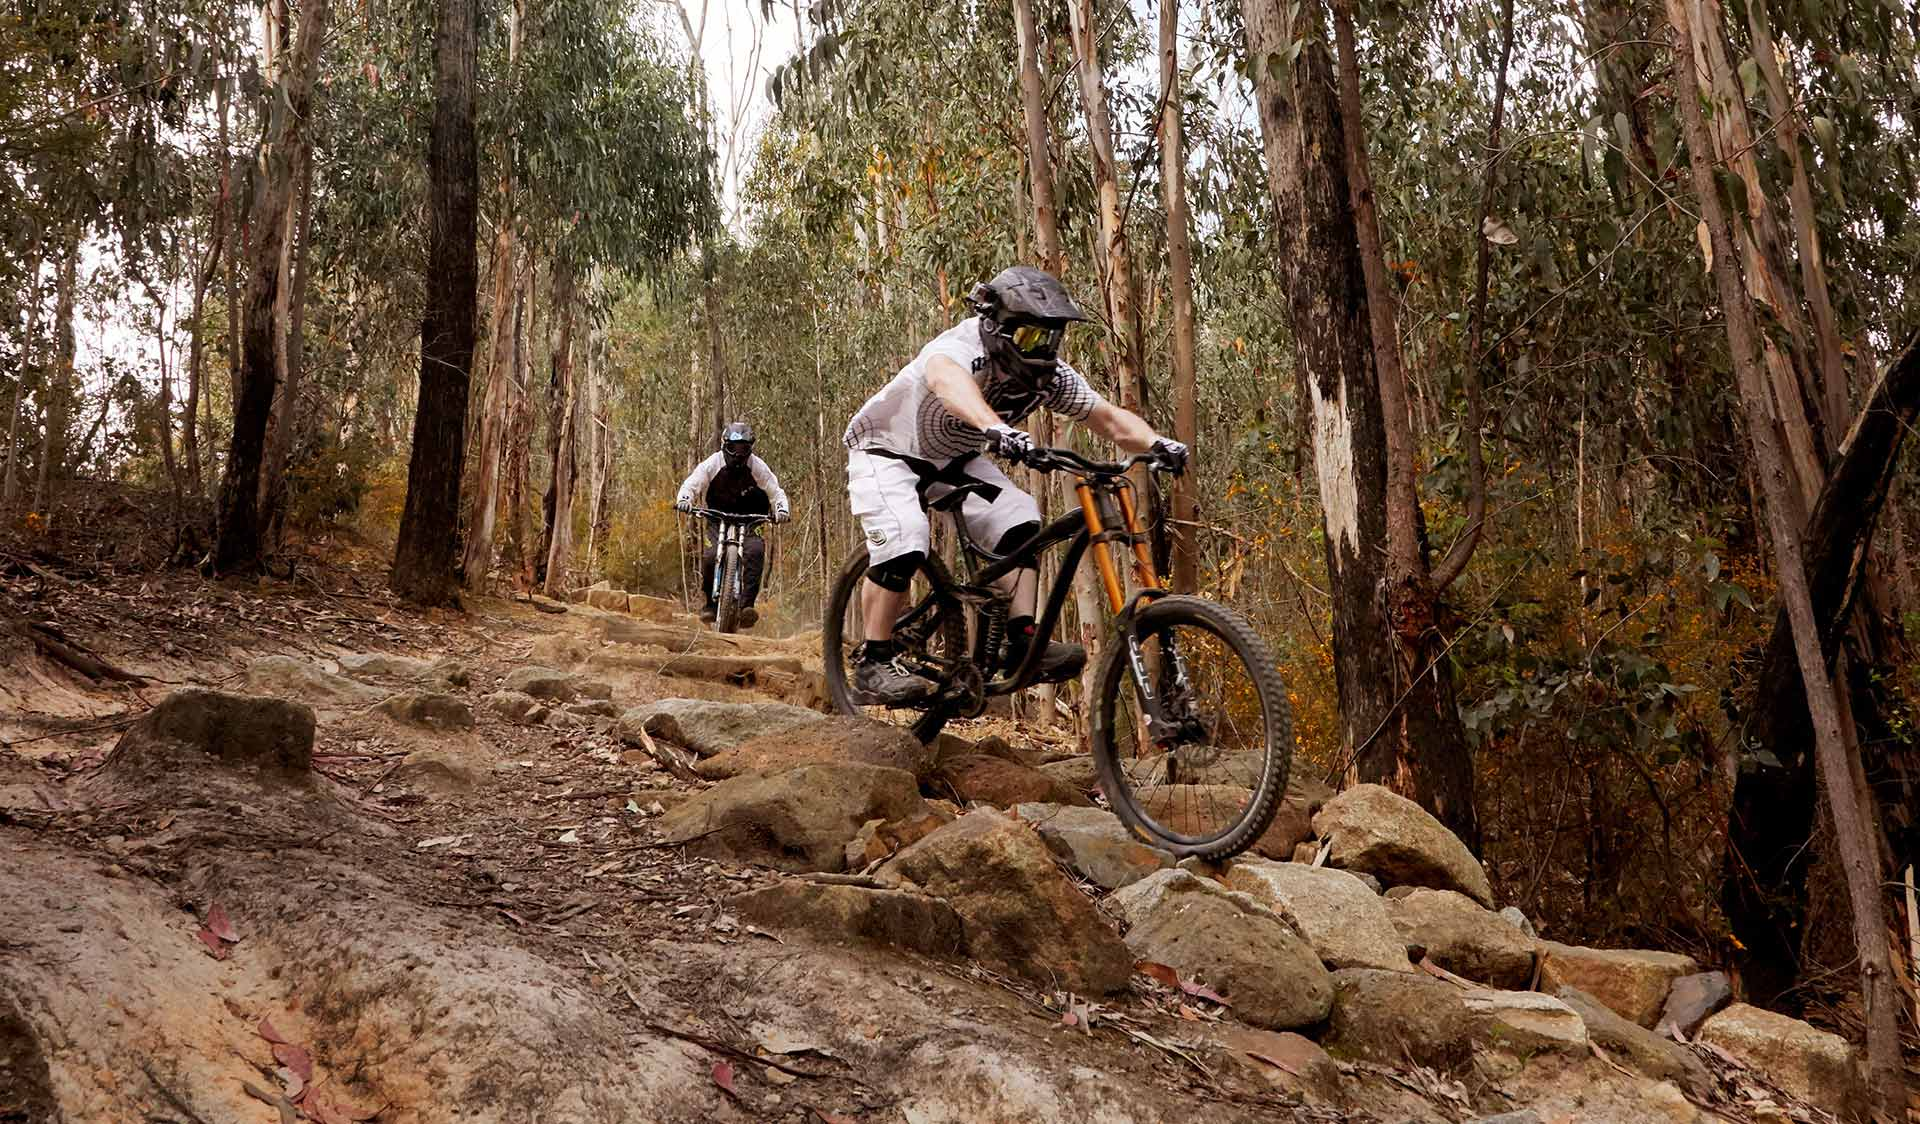 Two downhill mountain bikers descend Bowden Hill in Kinglake National Park.